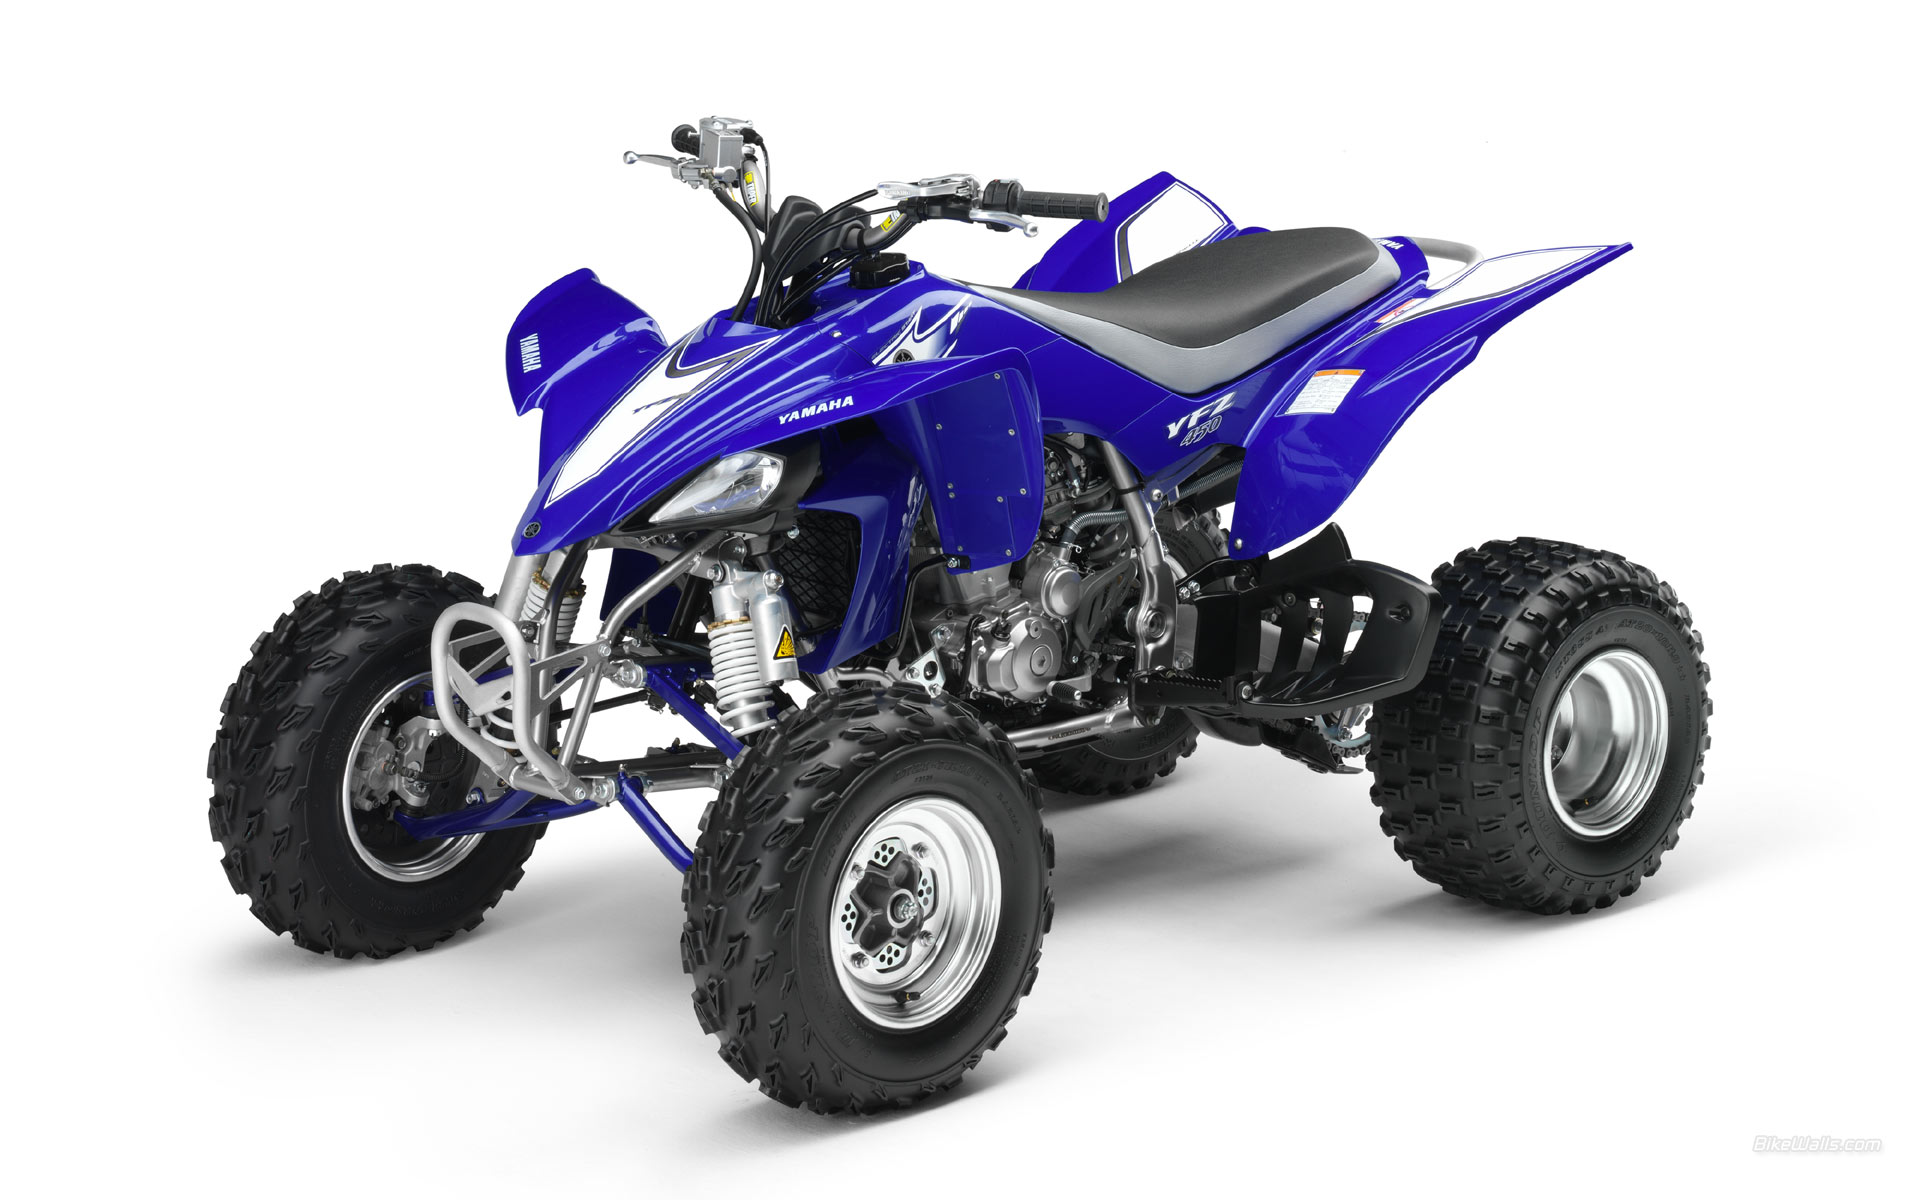 Yamaha Atv Wallpaper 7121 Hd Wallpapers in Bikes   Imagescicom 1920x1200